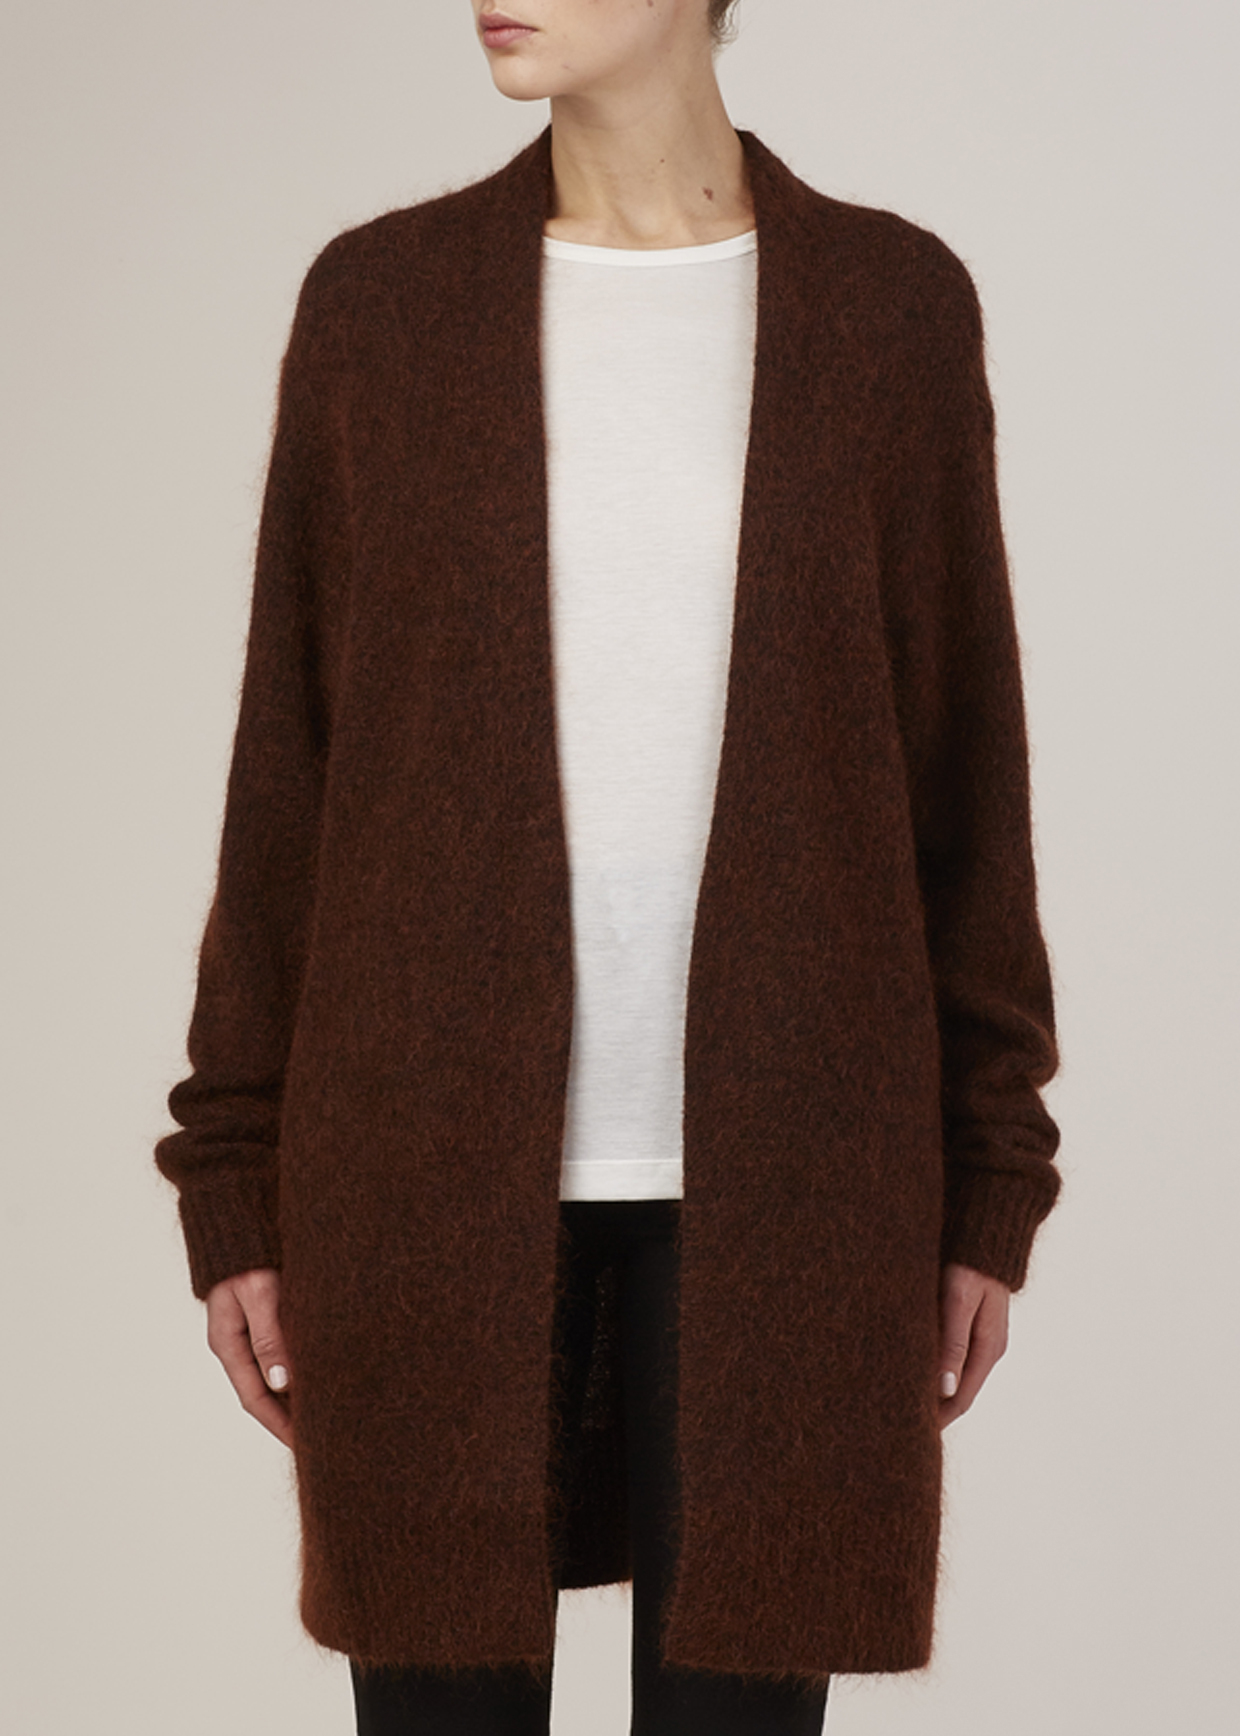 Acne studios Rust Brown Raya Mohair Cardigan in Brown | Lyst